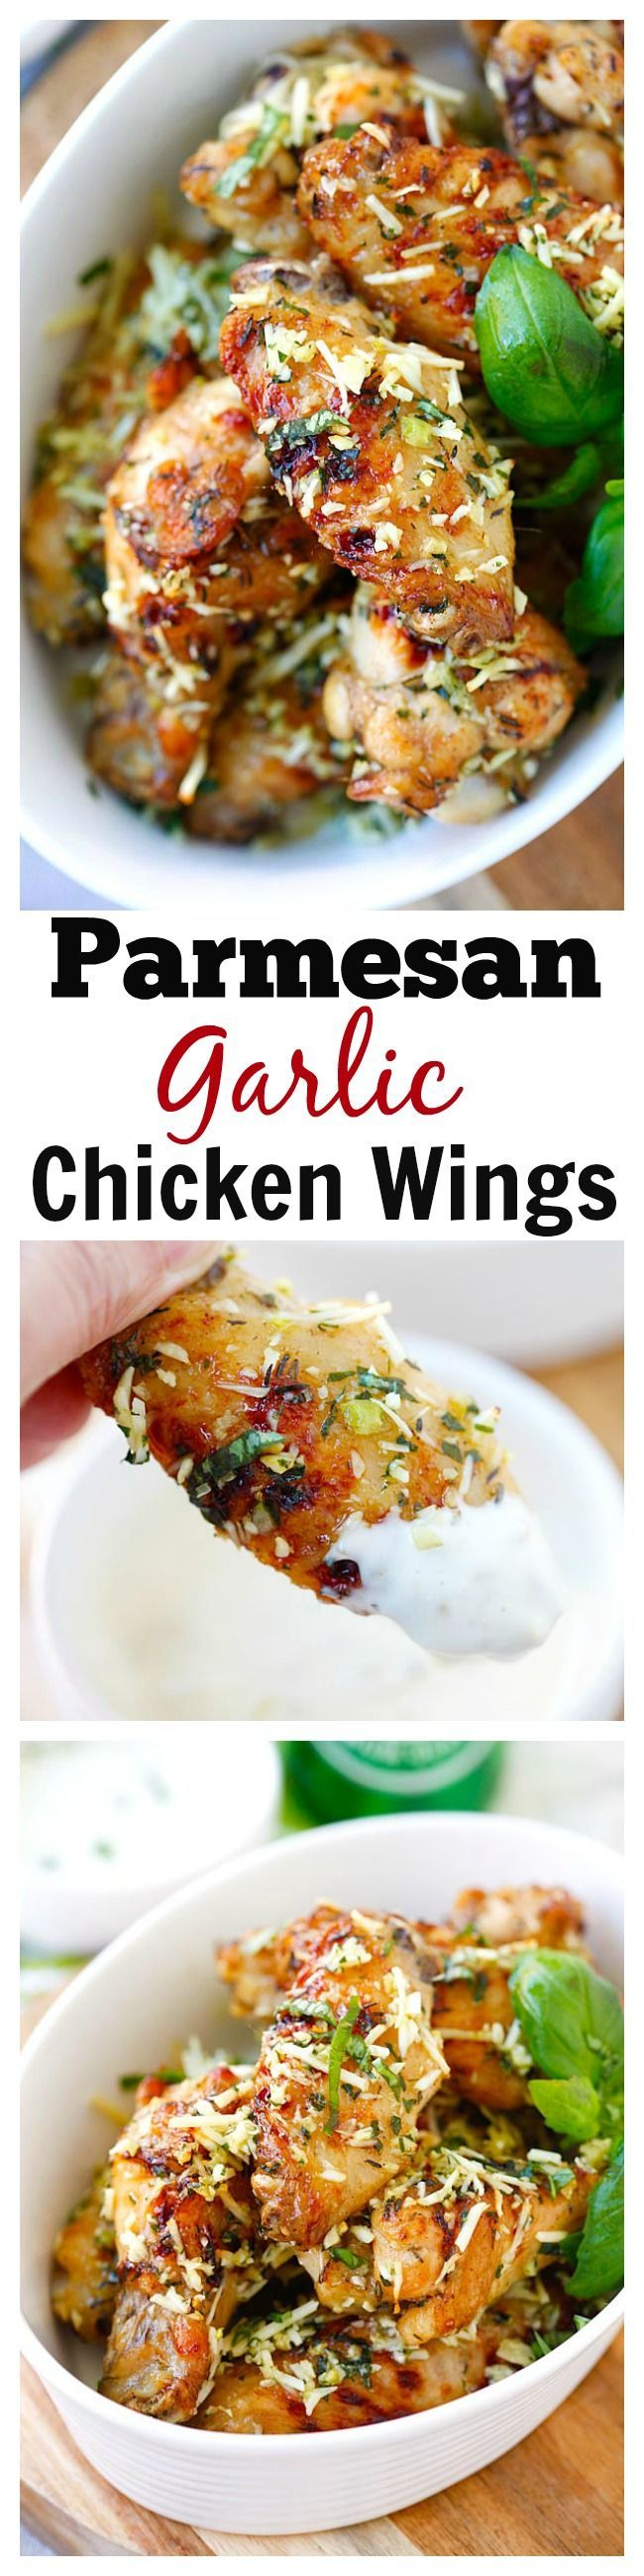 Best and easiest Baked Parmesan Garlic Chicken Wings made with Parmesan, garlic, basil, and spices, with blue cheese mustard dressing.